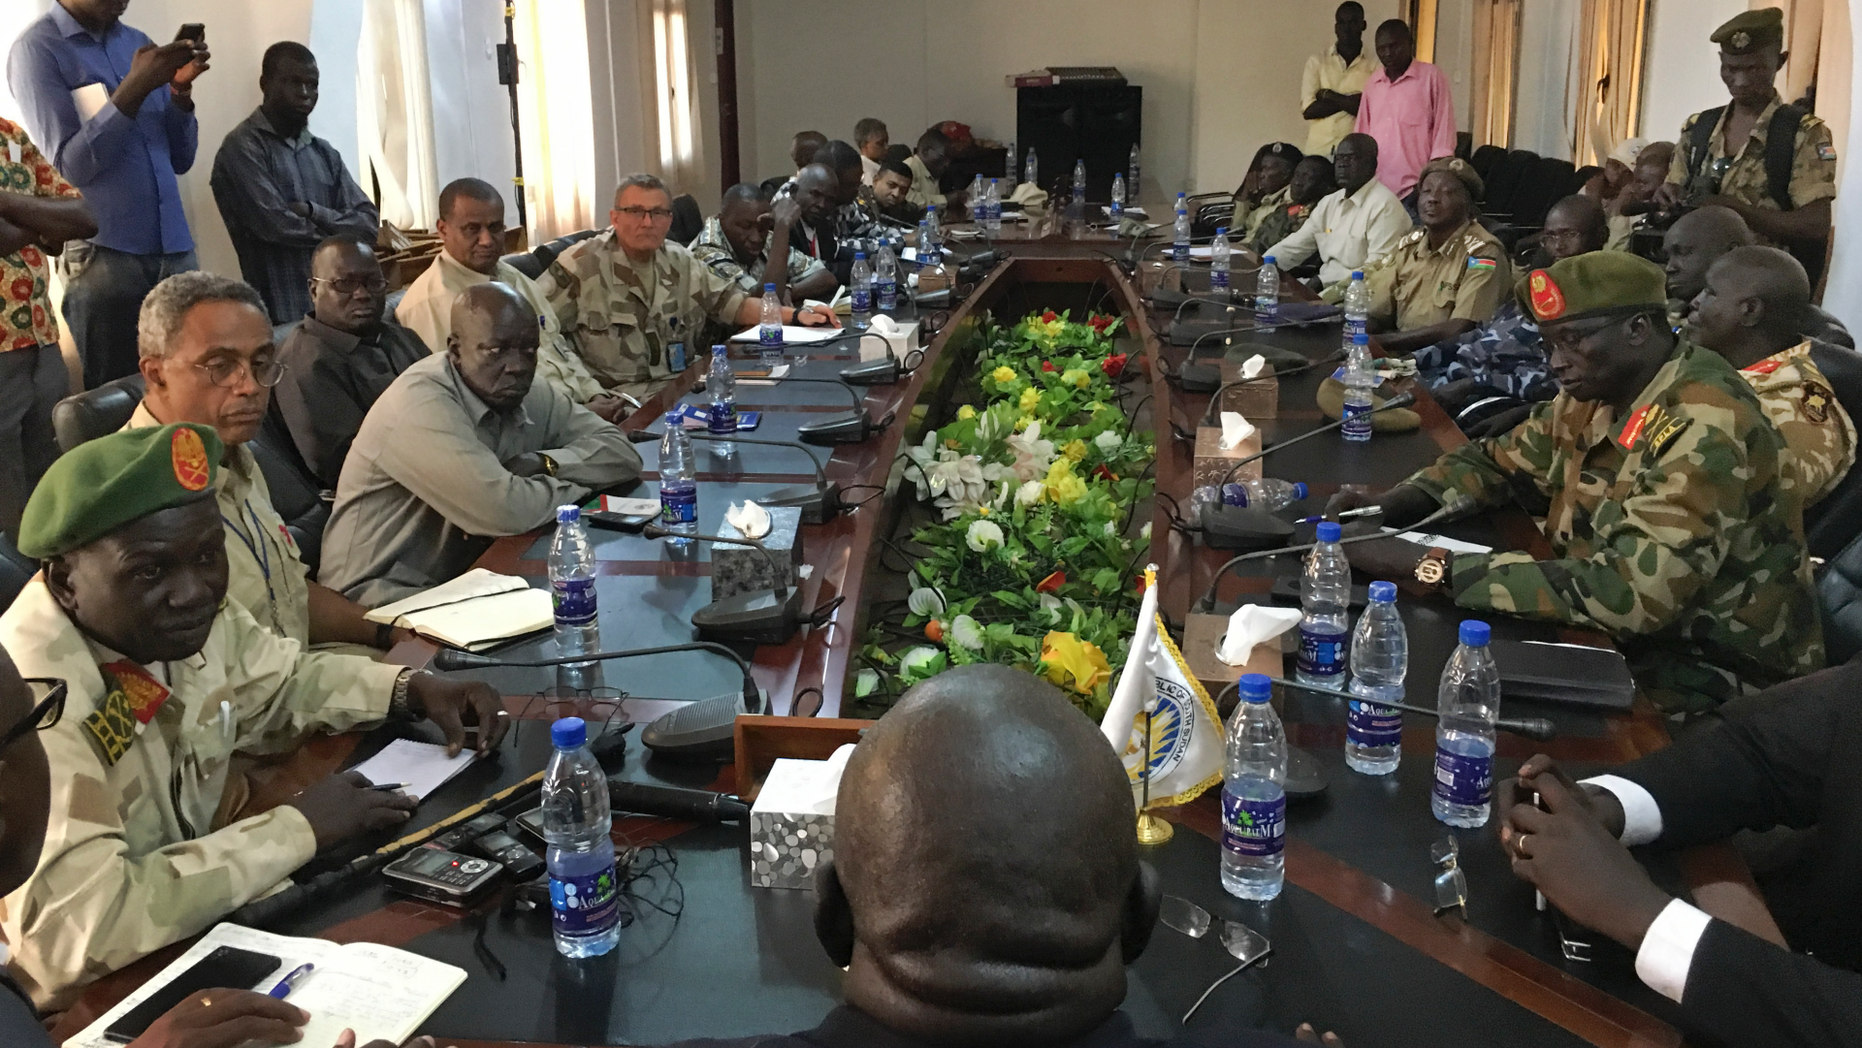 In this photo taken Thursday, Nov. 22, 2018, a South Sudan armed opposition commander Ashab Khamis, far-left, and a government army Gen. Keer Kiir Keer, far-right, attend high level talks where both sides exchanged accusations of violating the peace agreement, in Wau, South Sudan. The Associated Press witnessed the first meeting between the Wau region leaders of South Sudan's army and armed opposition since a groundbreaking peace deal, and the country's peace rests on whether the opposing sides can put a vicious past behind. (AP Photo/Sam Mednick)